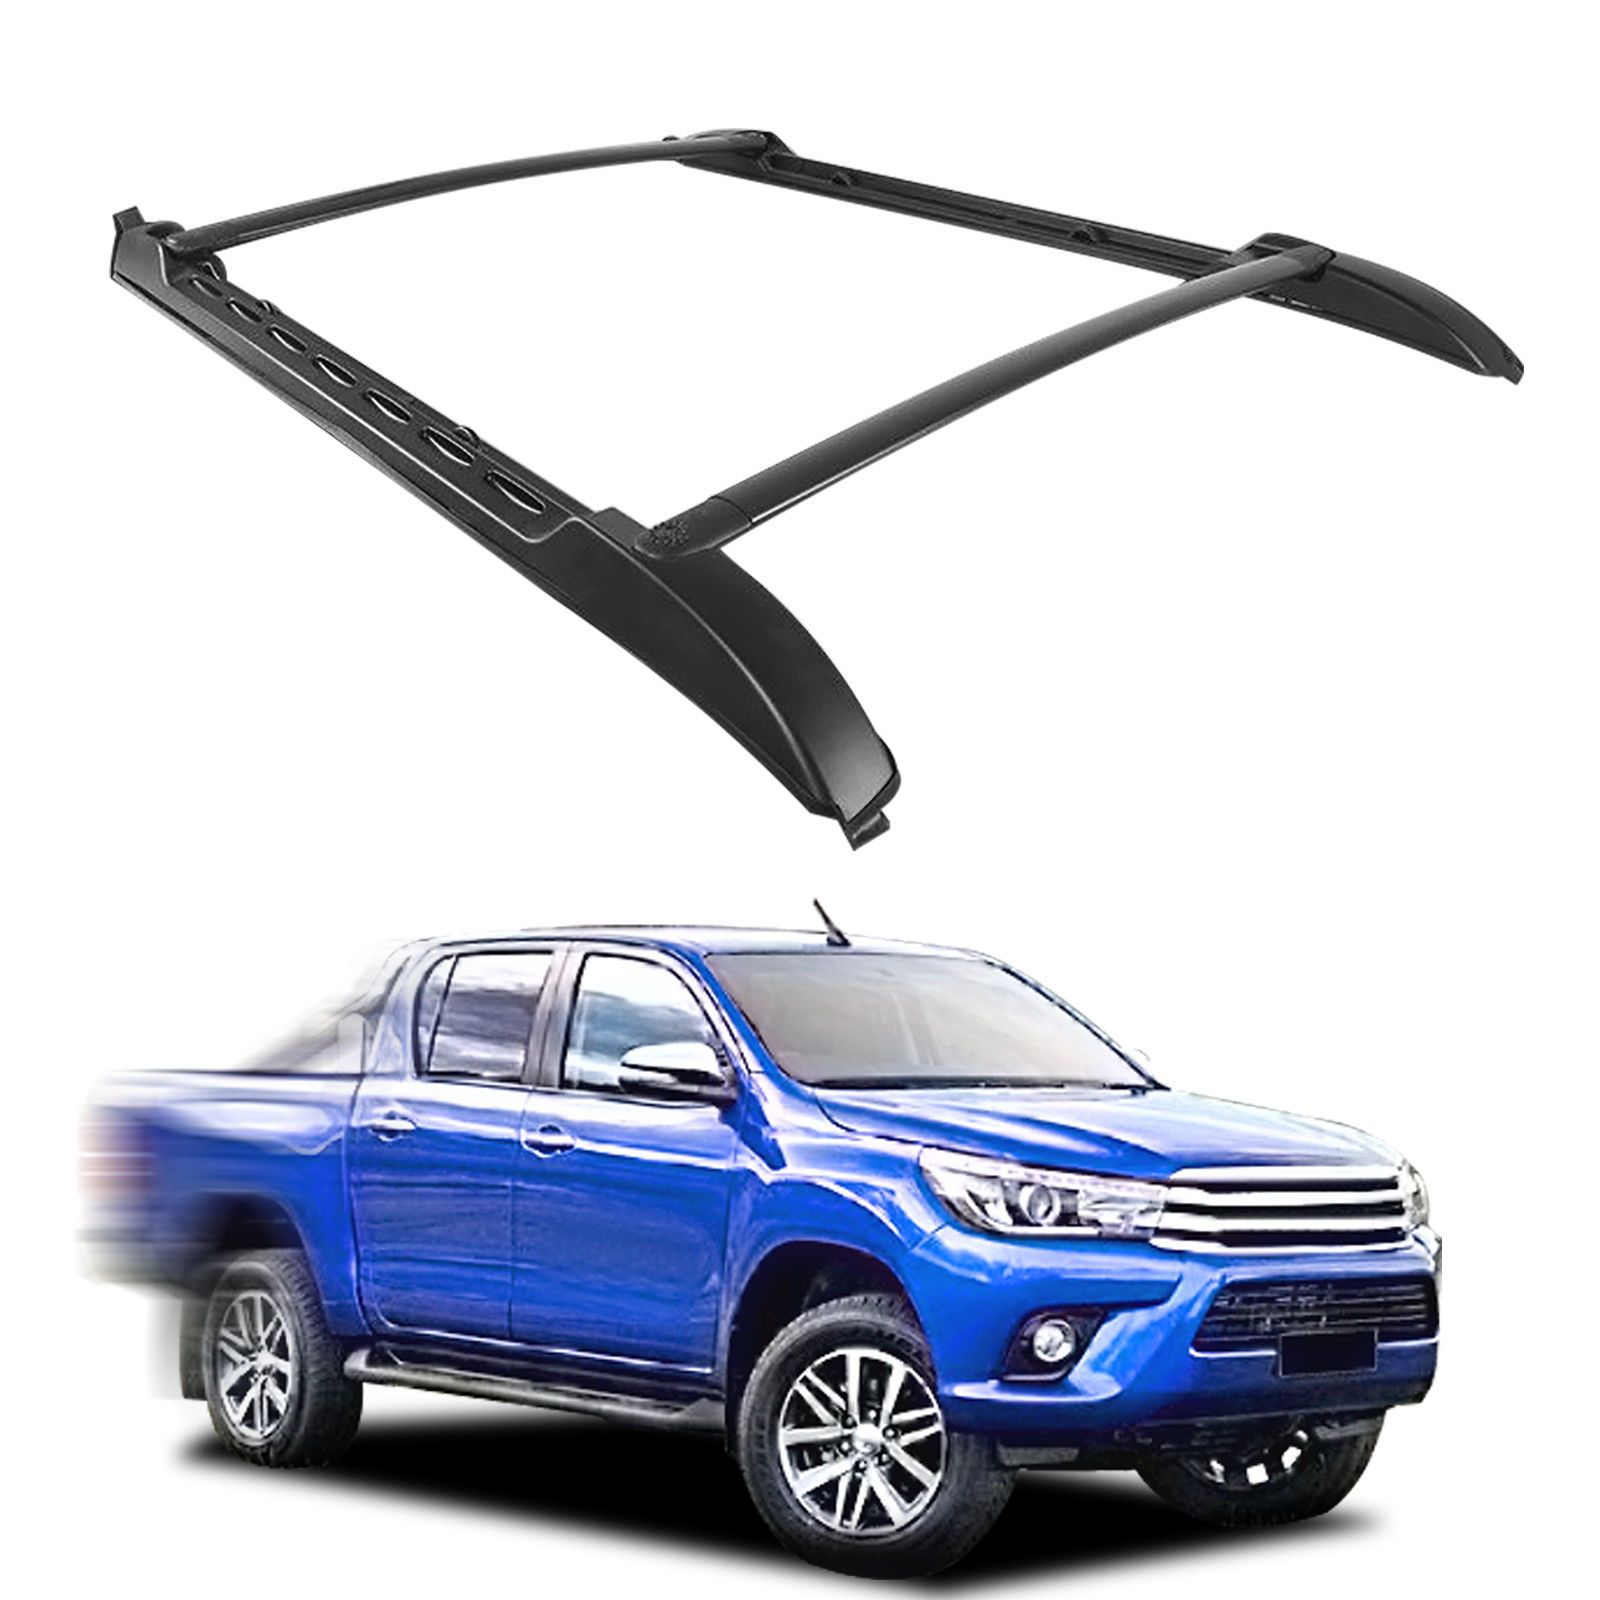 Awesome Amazing For 2005 2017 Toyota Tacoma Aluminum Luggage Carrier Roof Top Rack Side Rails 20 Toyota Tacoma Double Cab Toyota Tacoma Roof Rack Toyota Tacoma